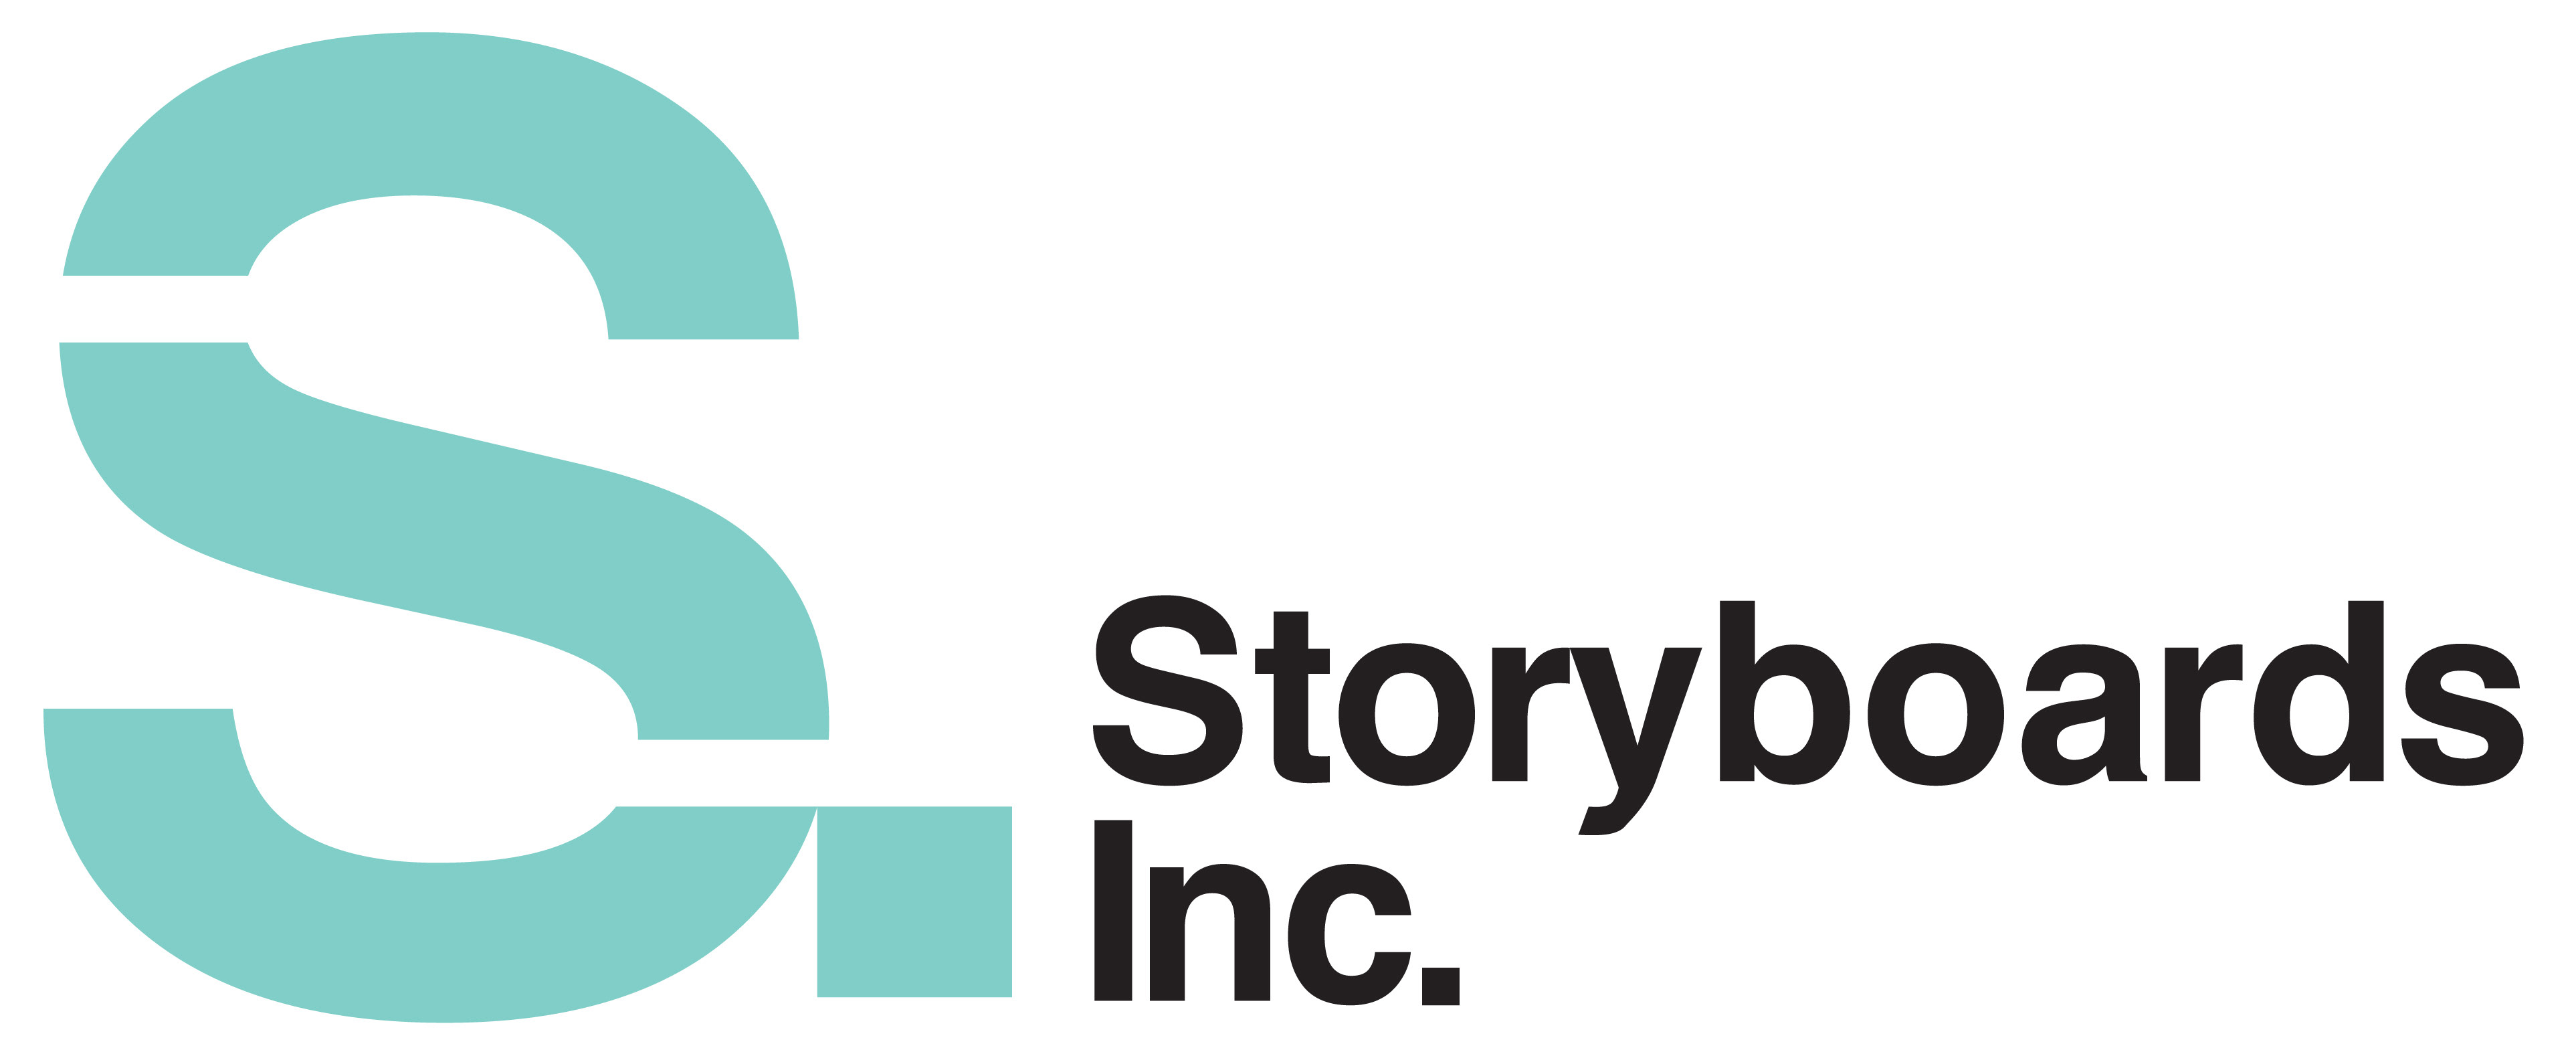 Storyboards Inc